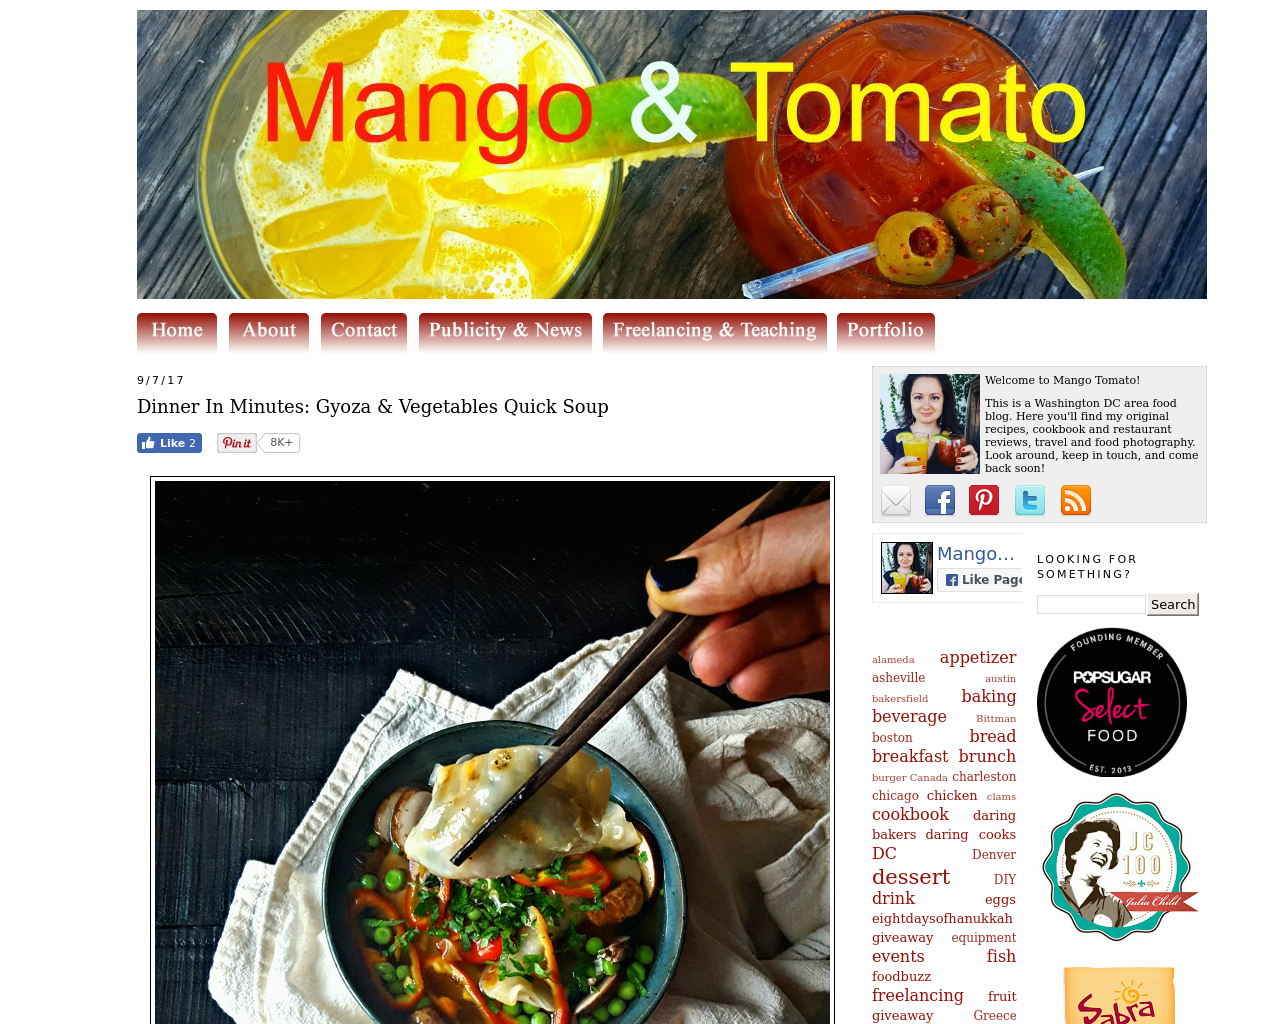 Mango-&-tomato-Advertising-Reviews-Pricing